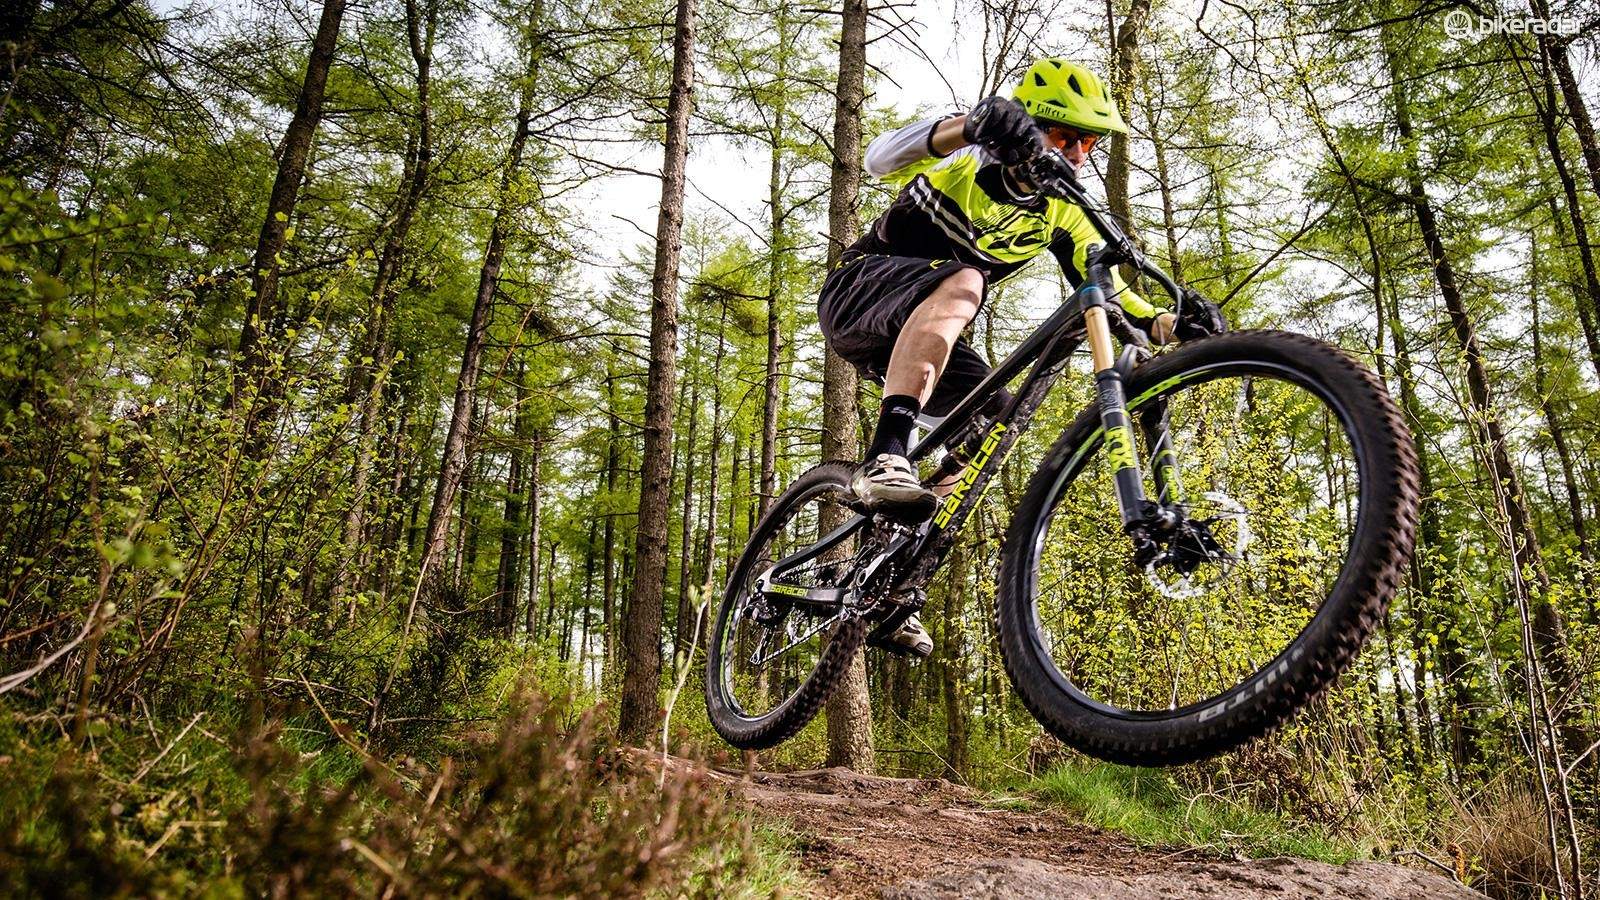 Point the Ariel downhill and any slight niggles evaporate – our test team loved spending time on this bike